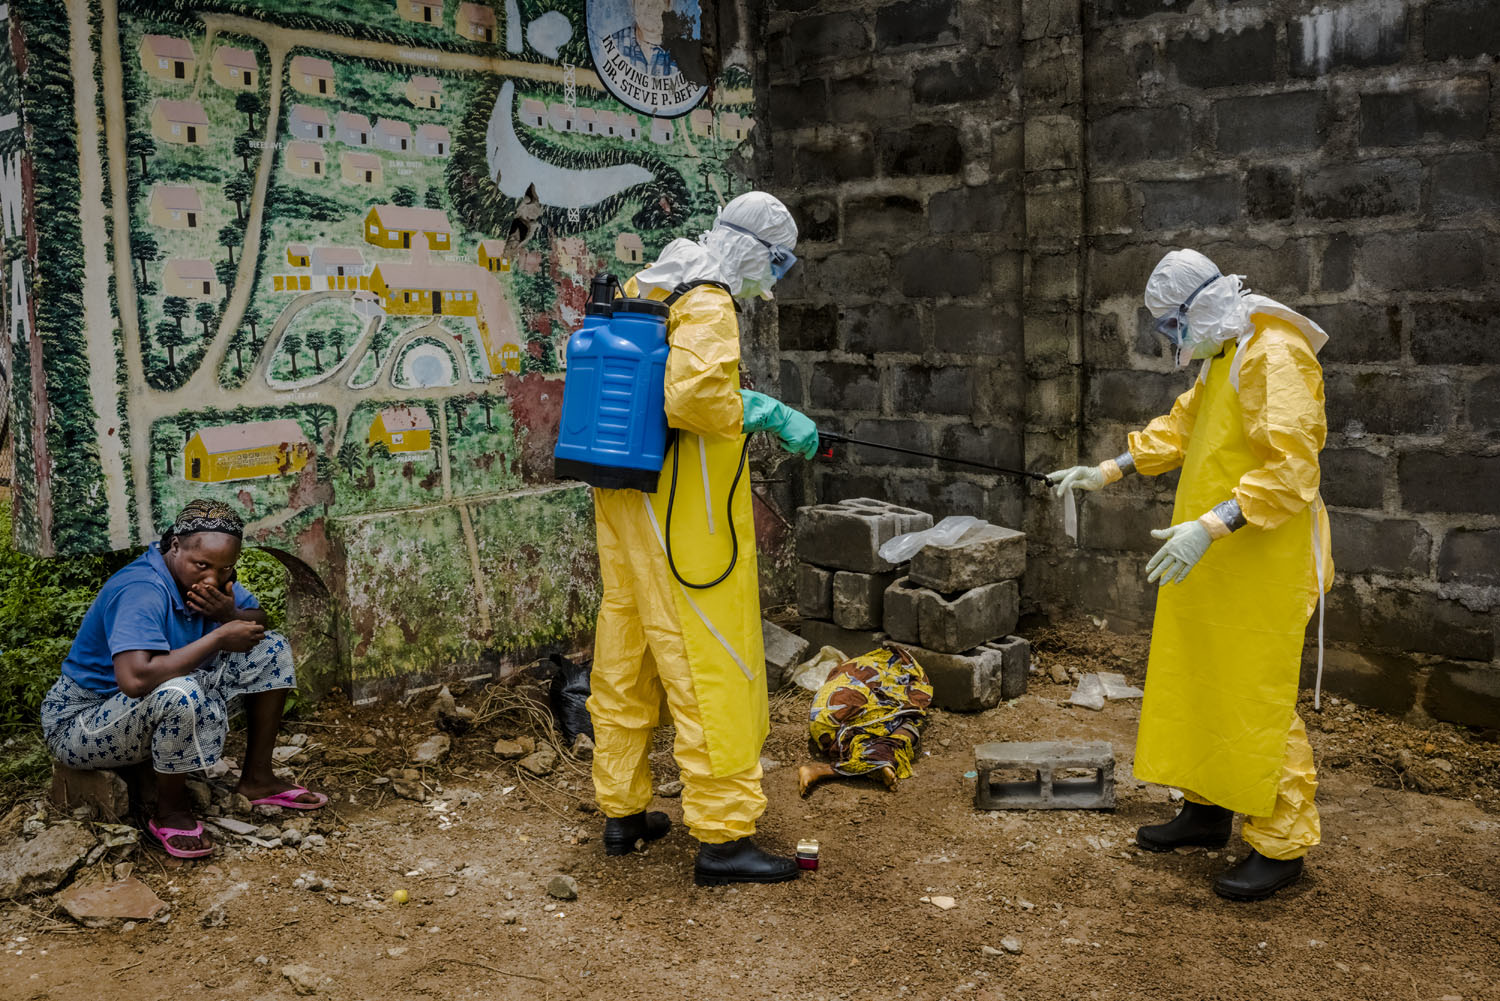 Medical staff spray down a small plastic bag containing the blood sample of Hawa Konneh, 9, a suspected Ebola victim, as she lays on the dirt wrapped in a shawl in front of the Doctors Without Borders (MSF) Ebola treatment center, as her mother, Masogbe, sits near to her prior to Hawa's passing away on Sept. 4, 2014 in Monrovia, Liberia.